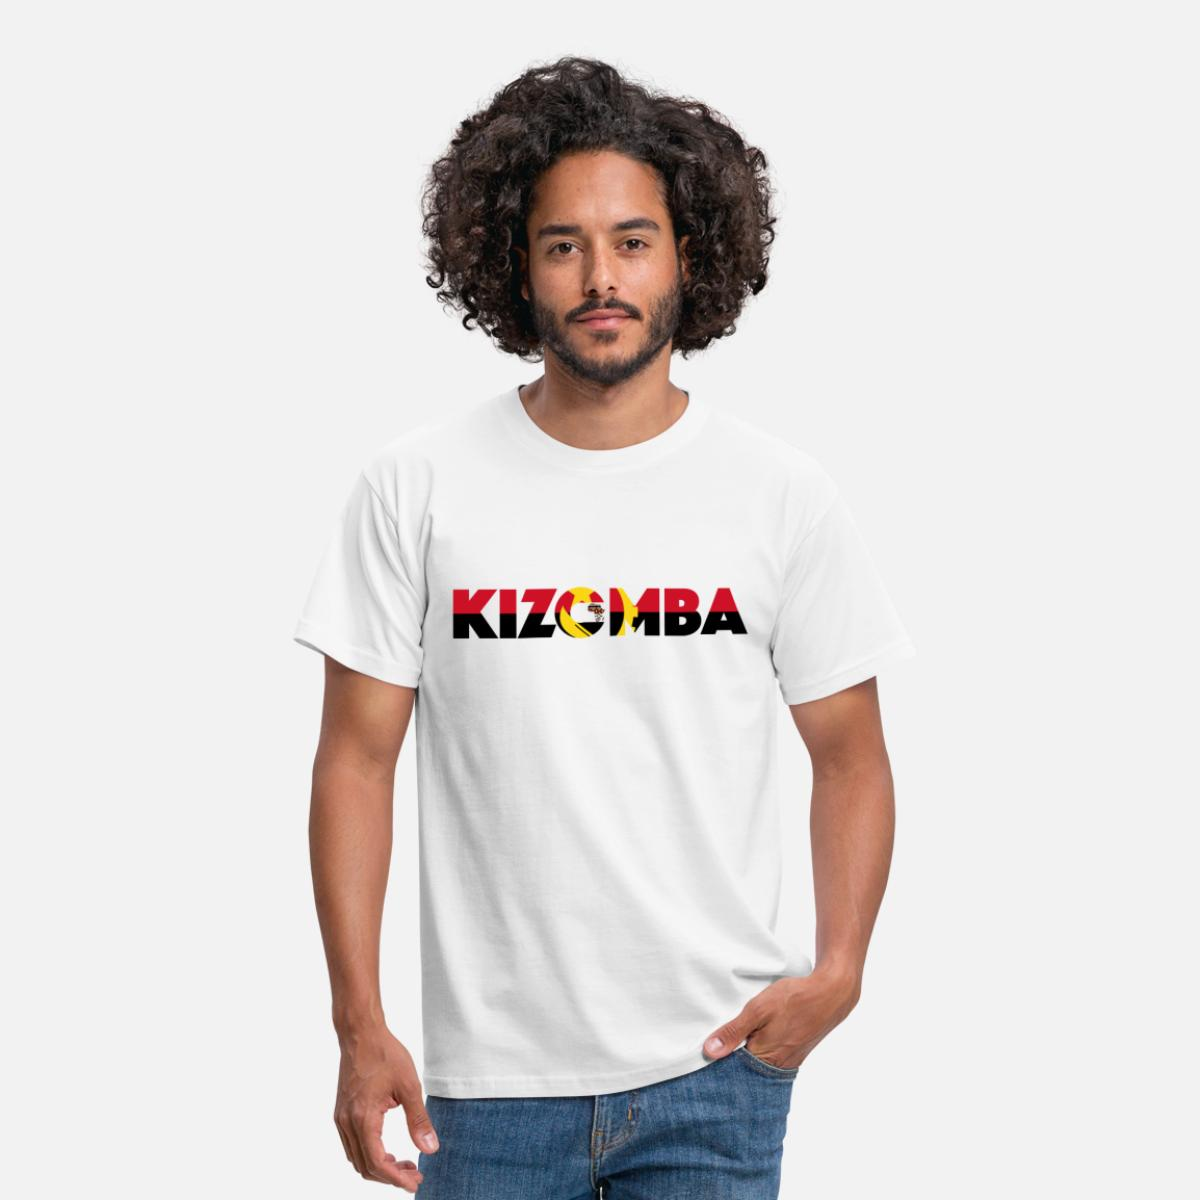 616f9d29b552a Kizomba Text Wax T-shirt Homme | Spreadshirt